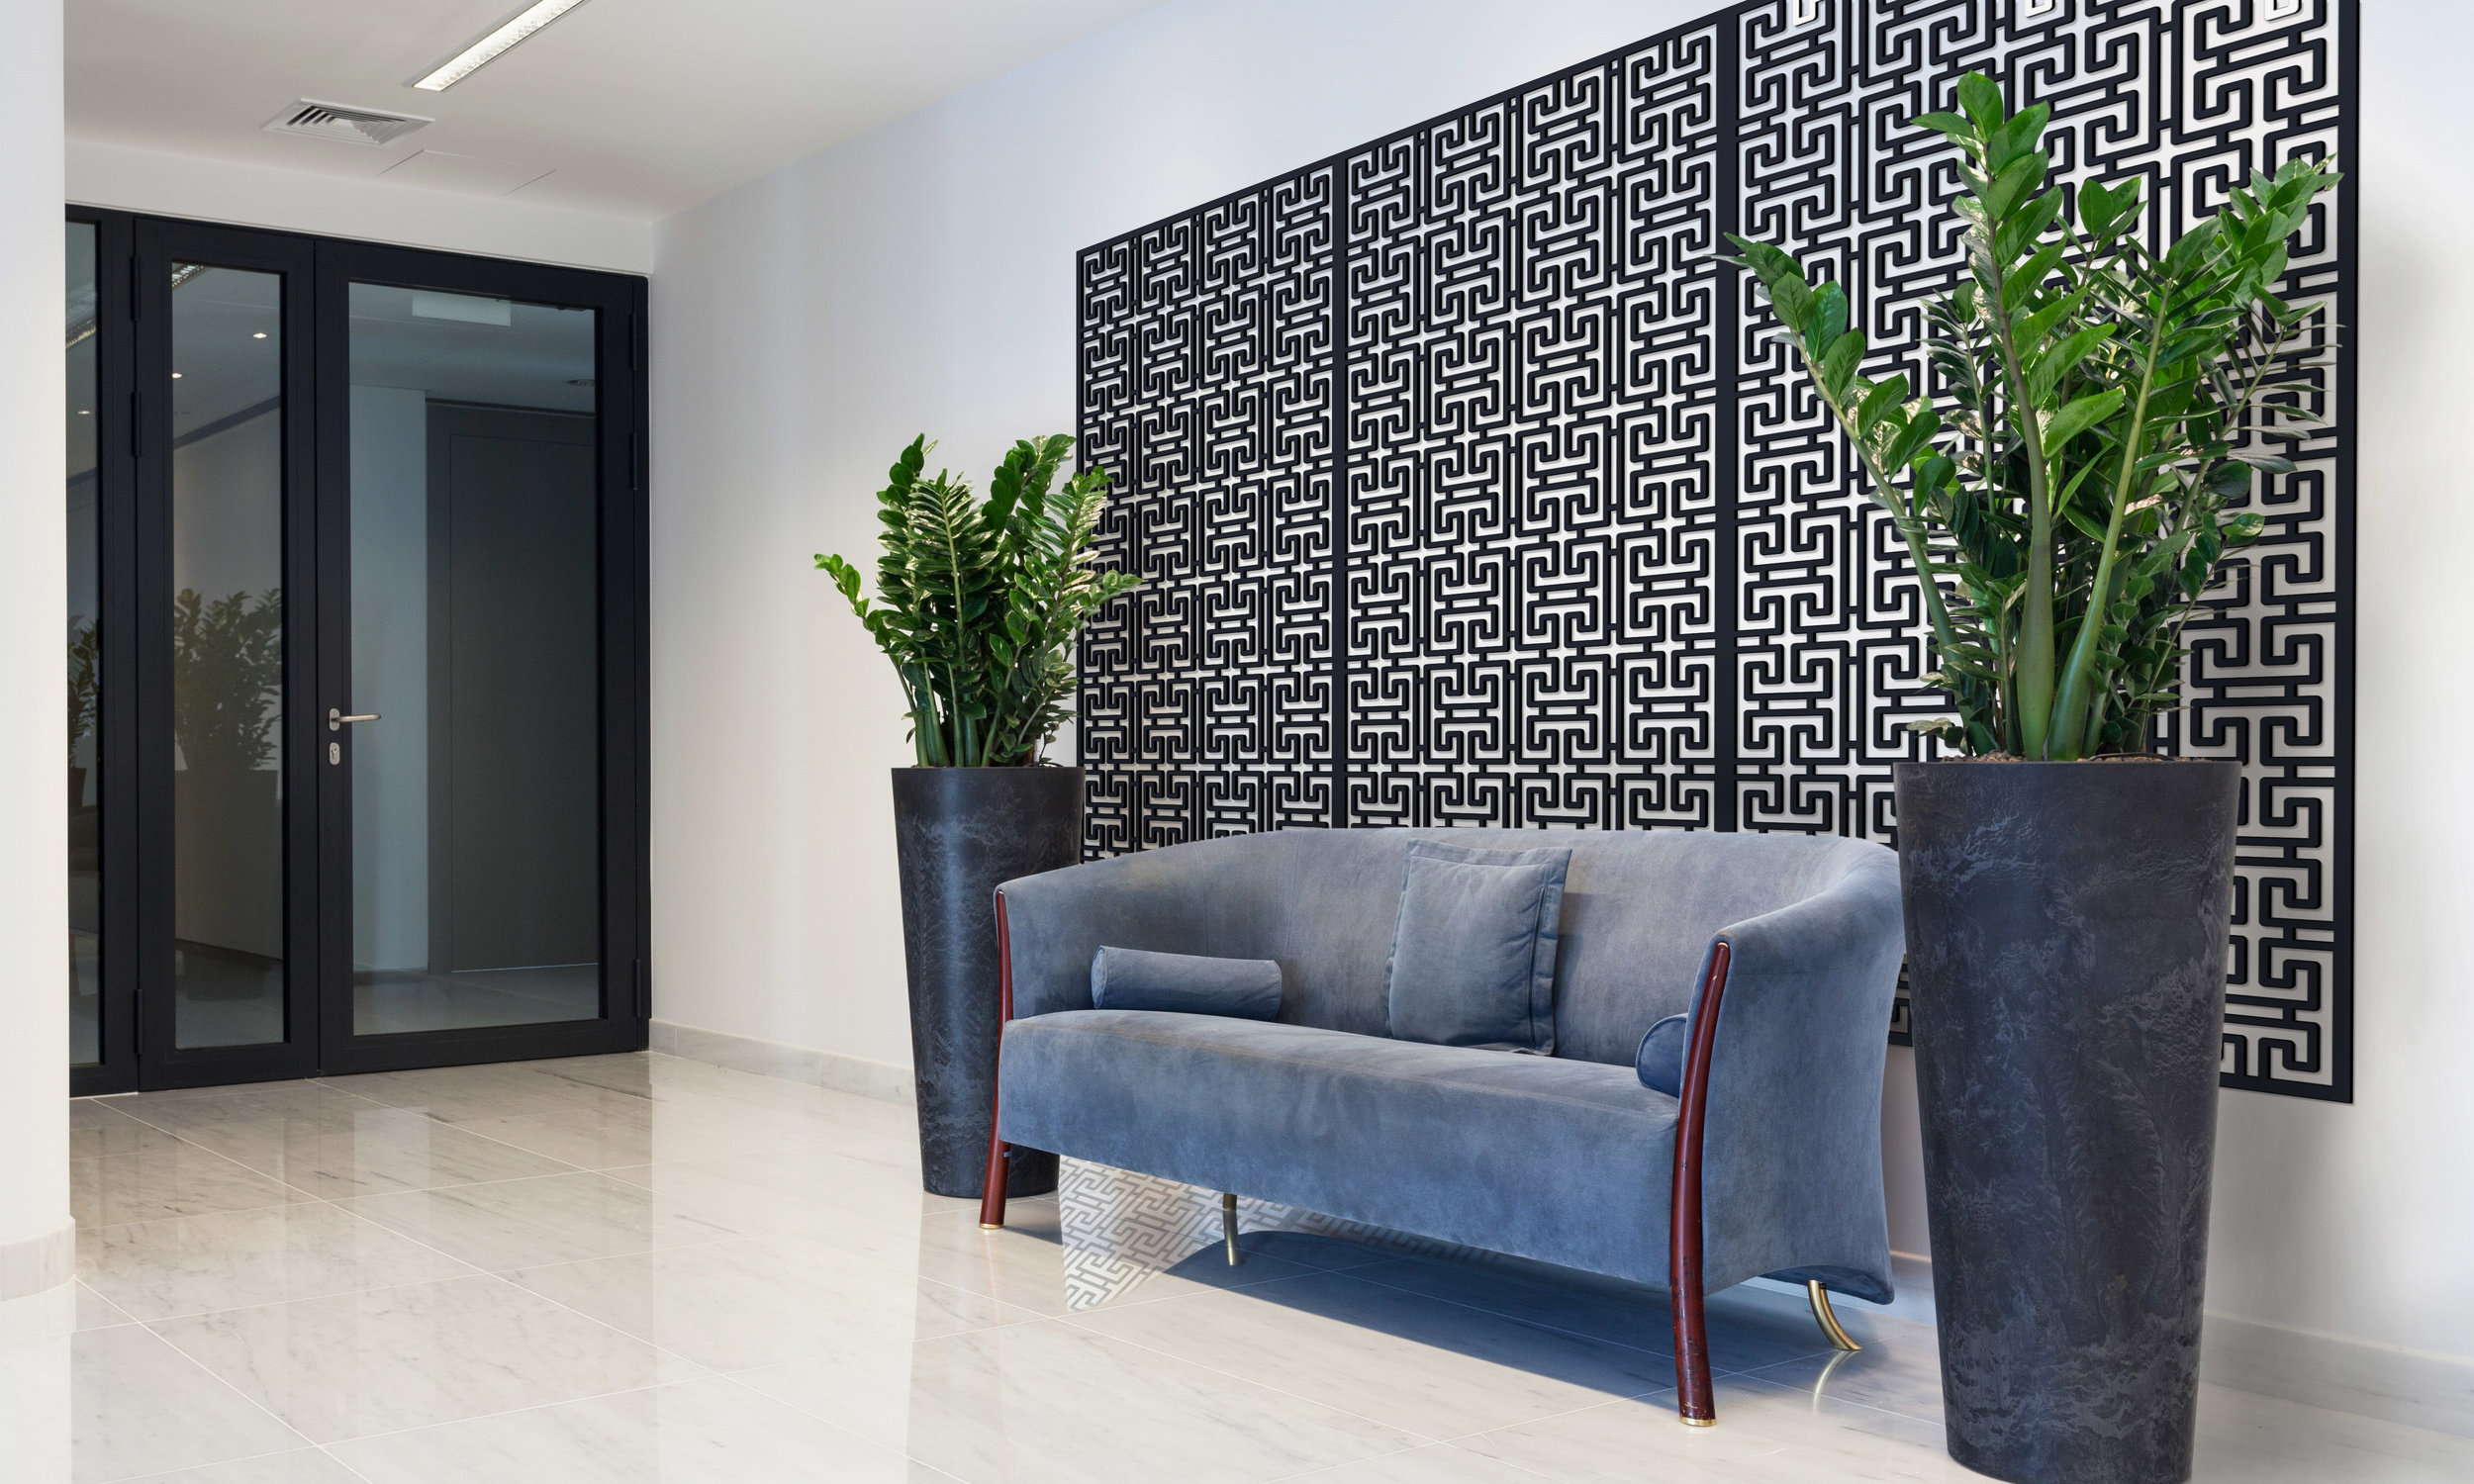 Installation Rendering B   Bejing Grille decorative office wall panel - painted